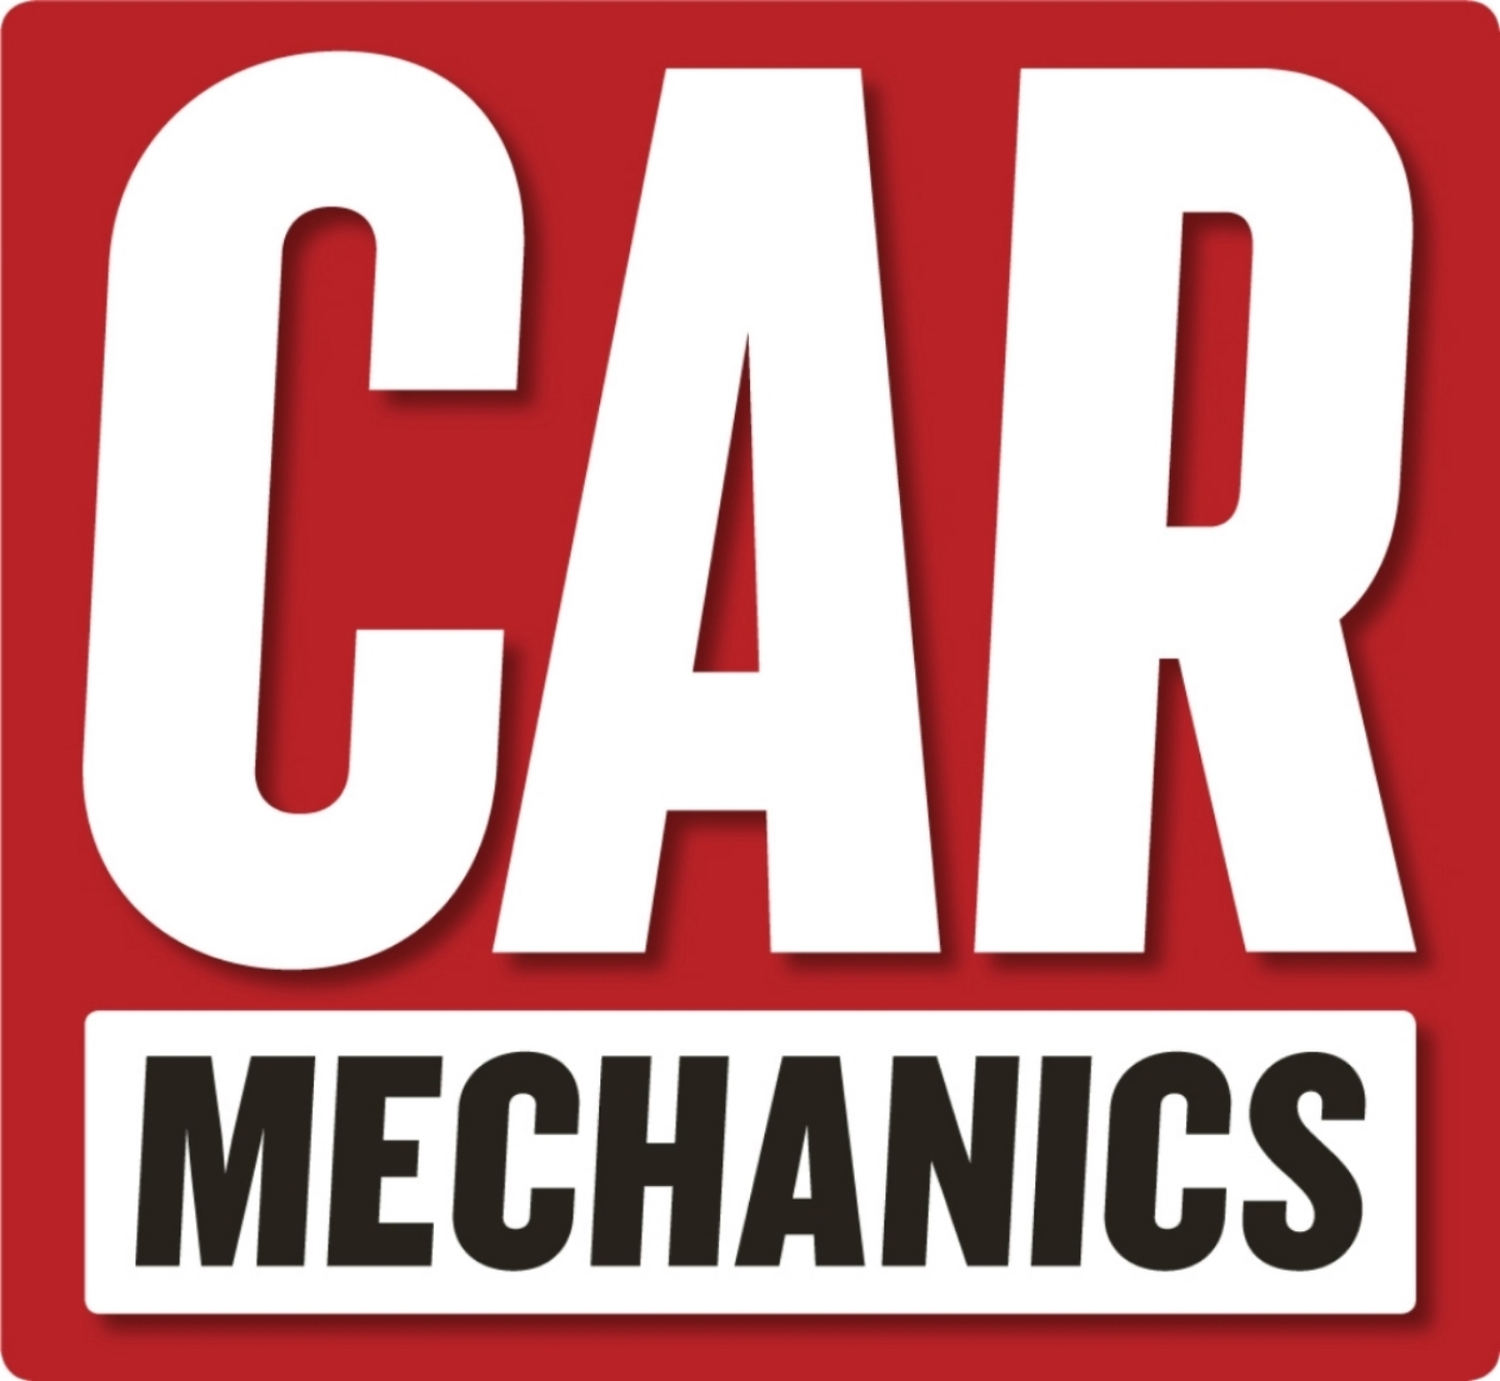 Car Mechanics